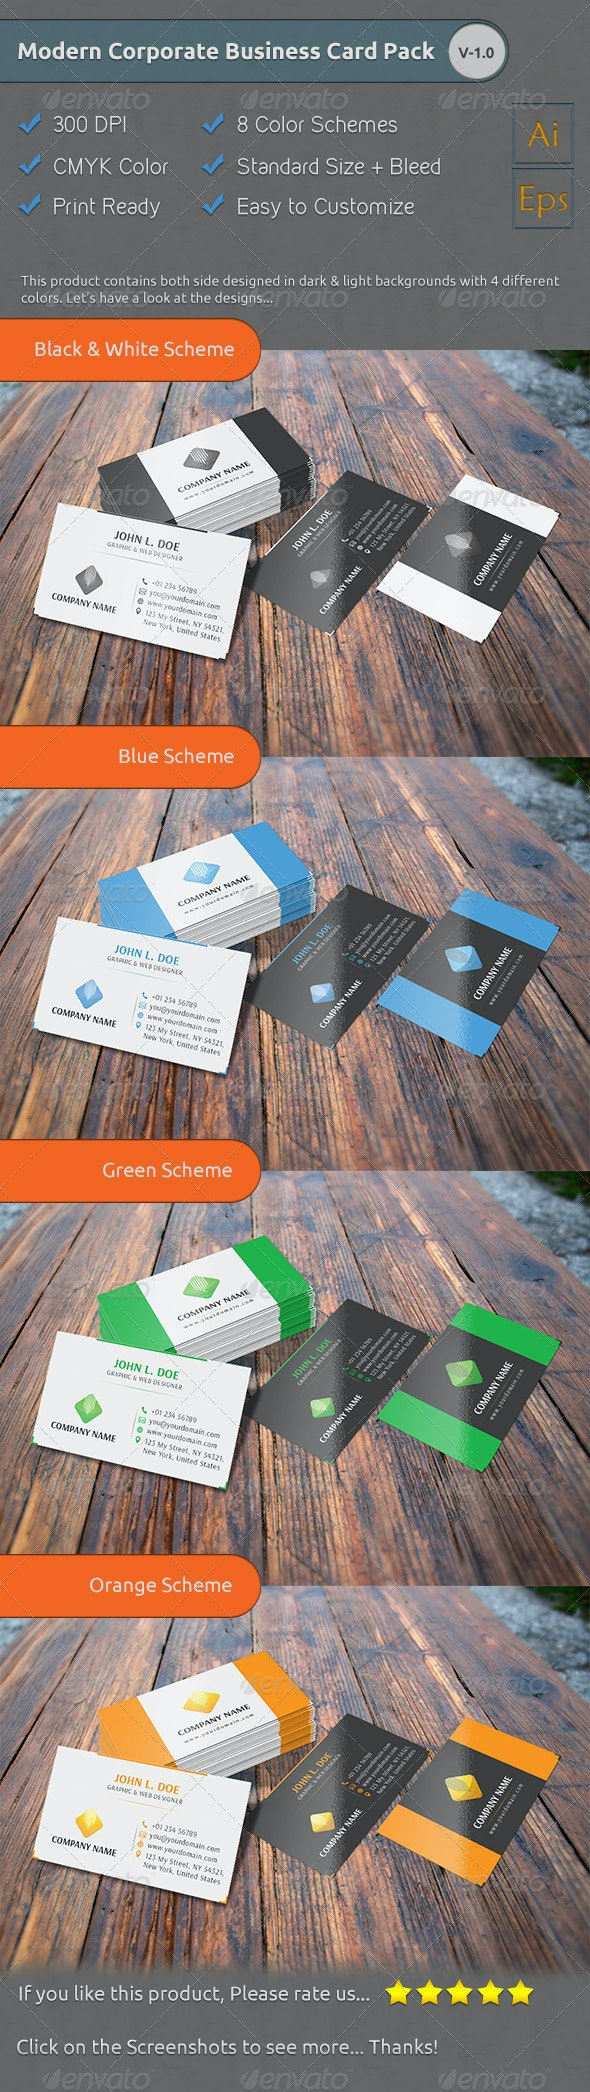 Modern Corporate Business Card Pack [V-1.0] - Corporate Business Cards